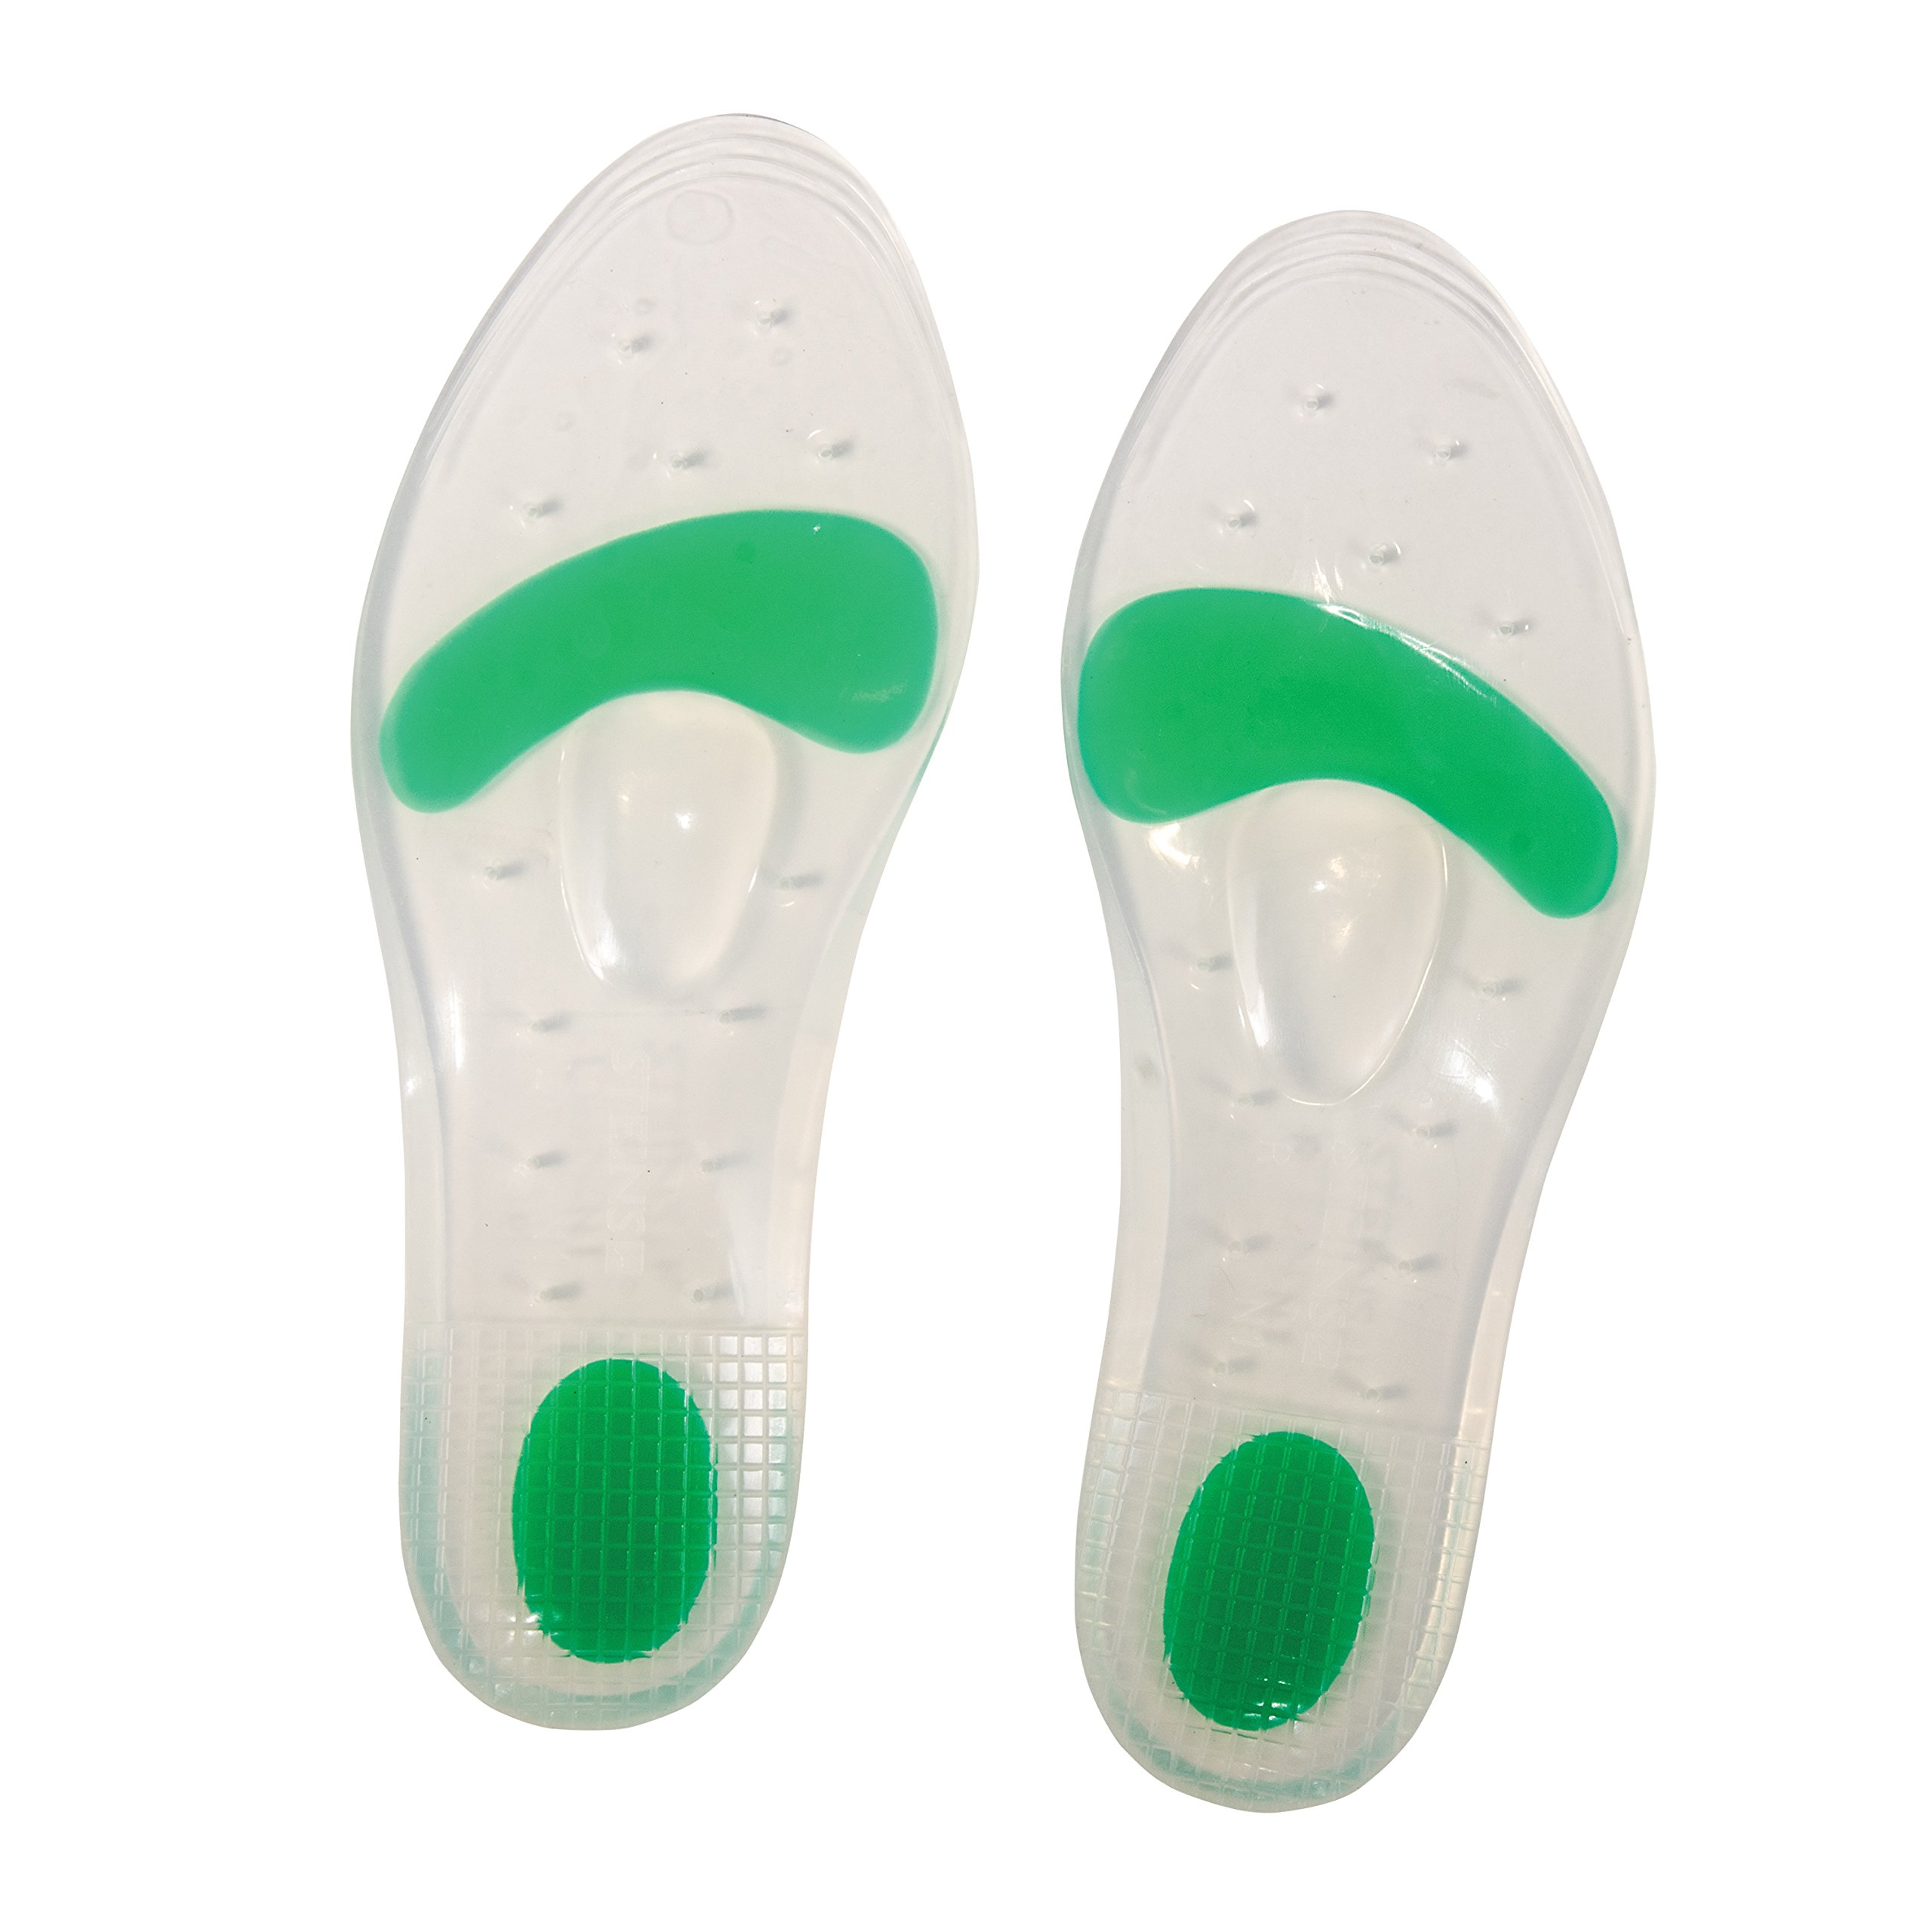 Stein's Silicone Dual Density Comfort Shoe Gel Insoles for Extra Arch Support and Feet, Ankle, Knee and Hip Joint Relief, Men (Size 9.5 to 10.5) or Women (Size 10.5 to 11.5), Green